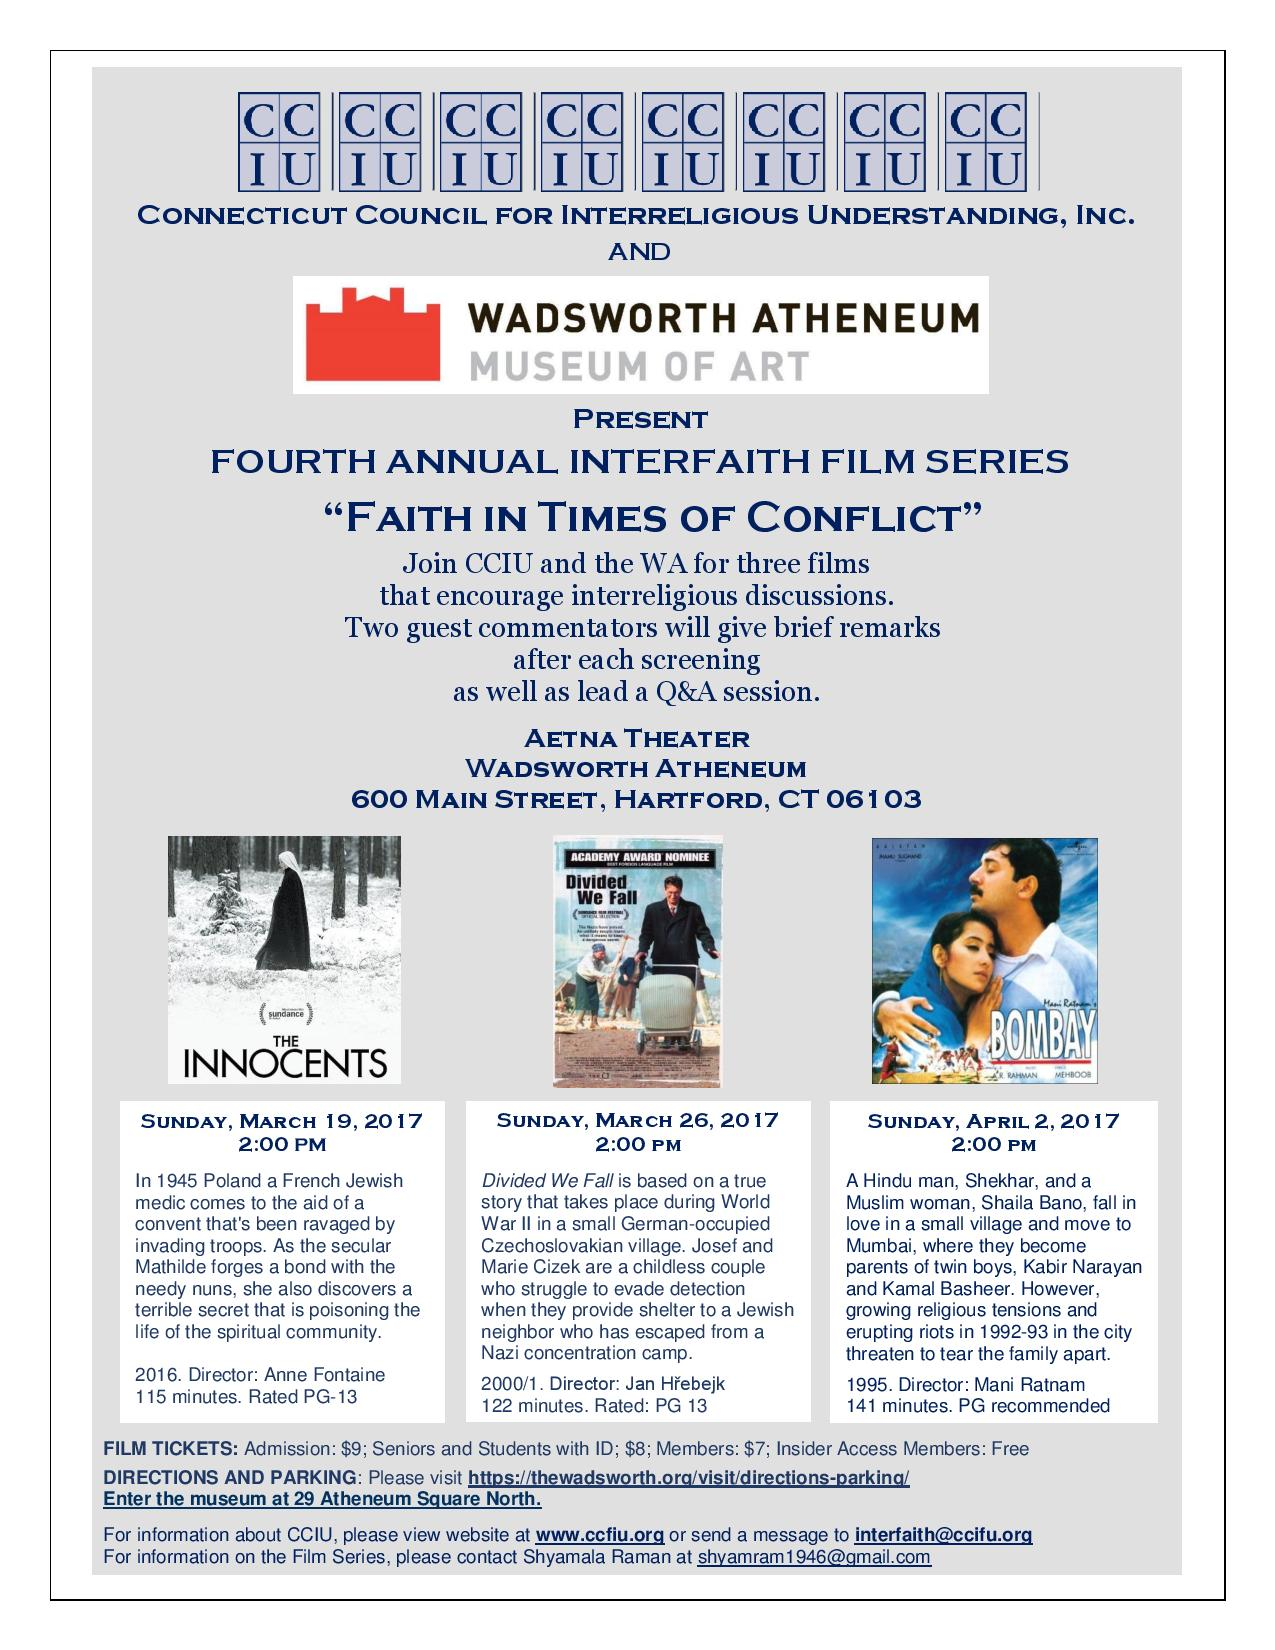 Fourth Annual Interfaith Film Series Poster